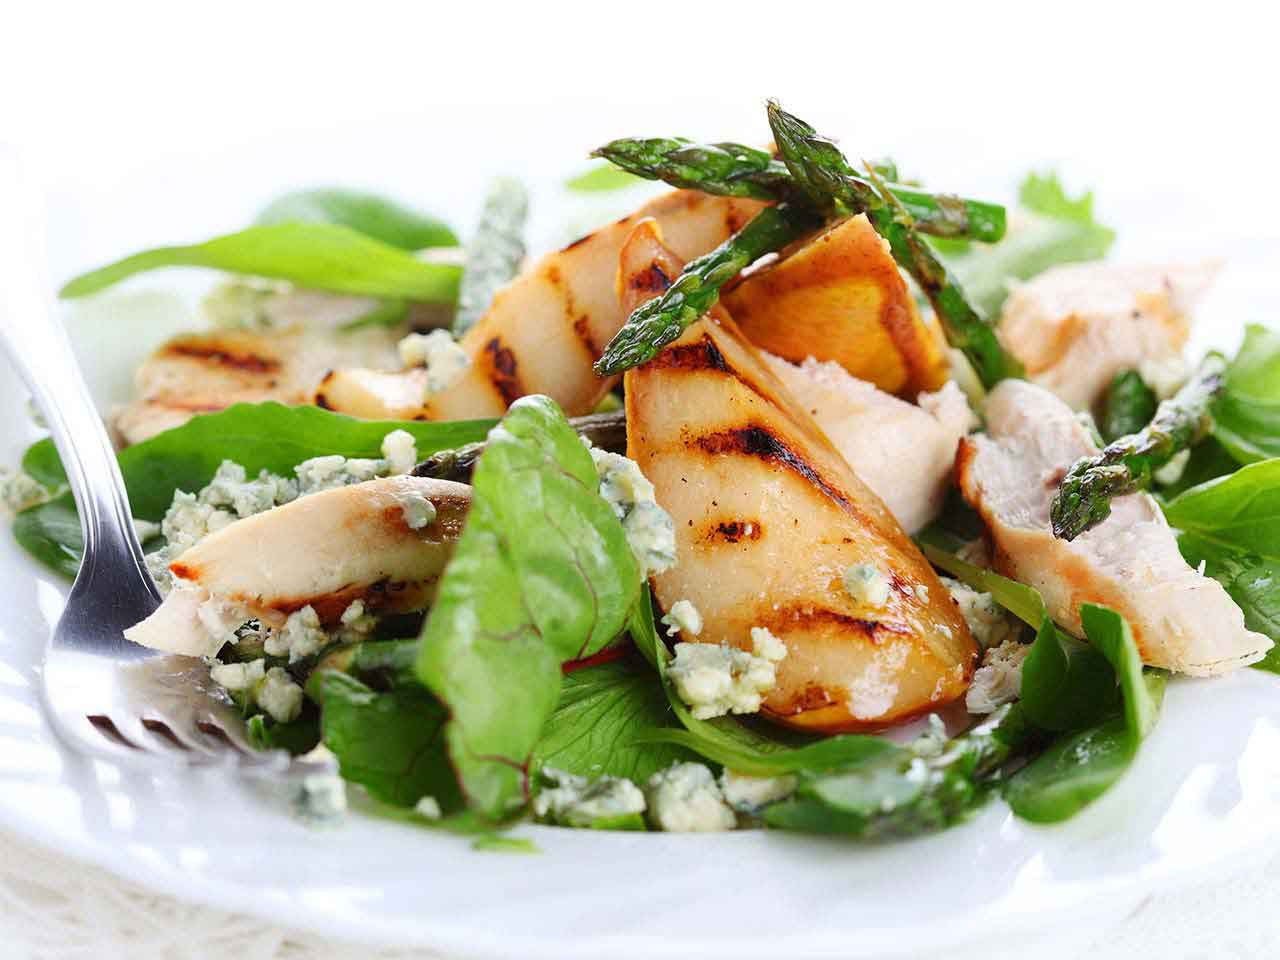 Asparagus chicken and feta salad